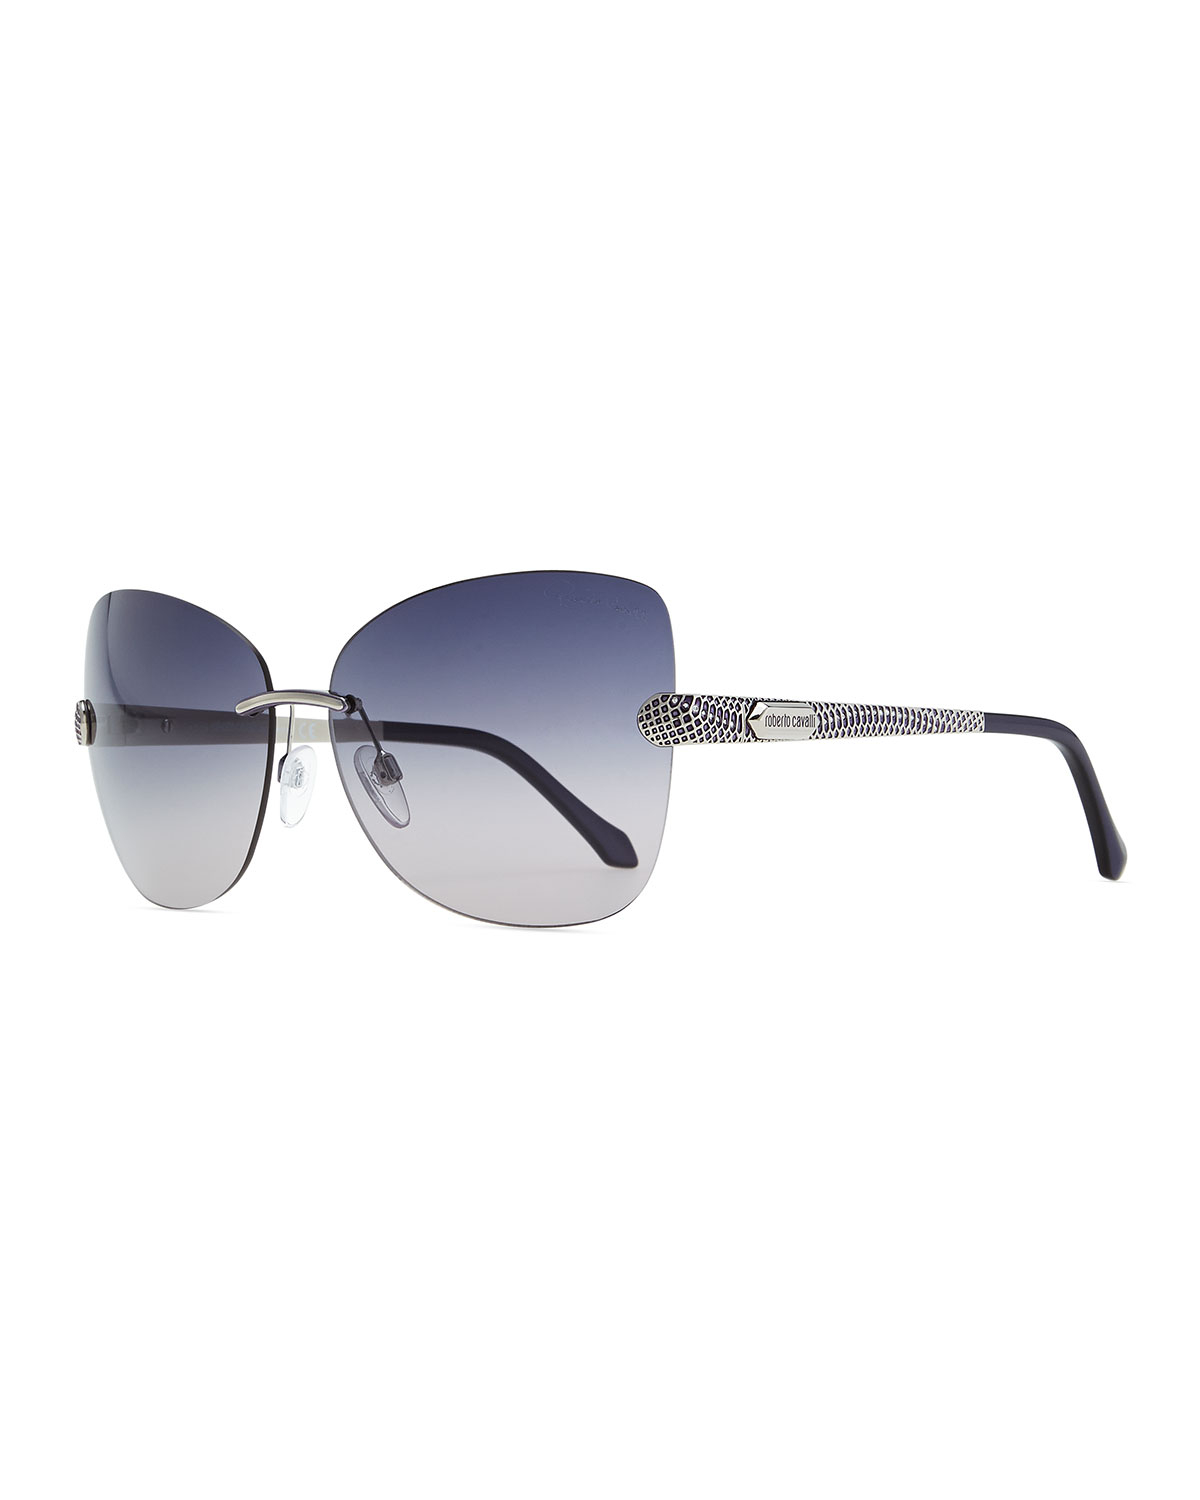 Rimless Glasses With Changeable Arms : Roberto Cavalli Rimless Sunglasses with Snakeprint Arms ...